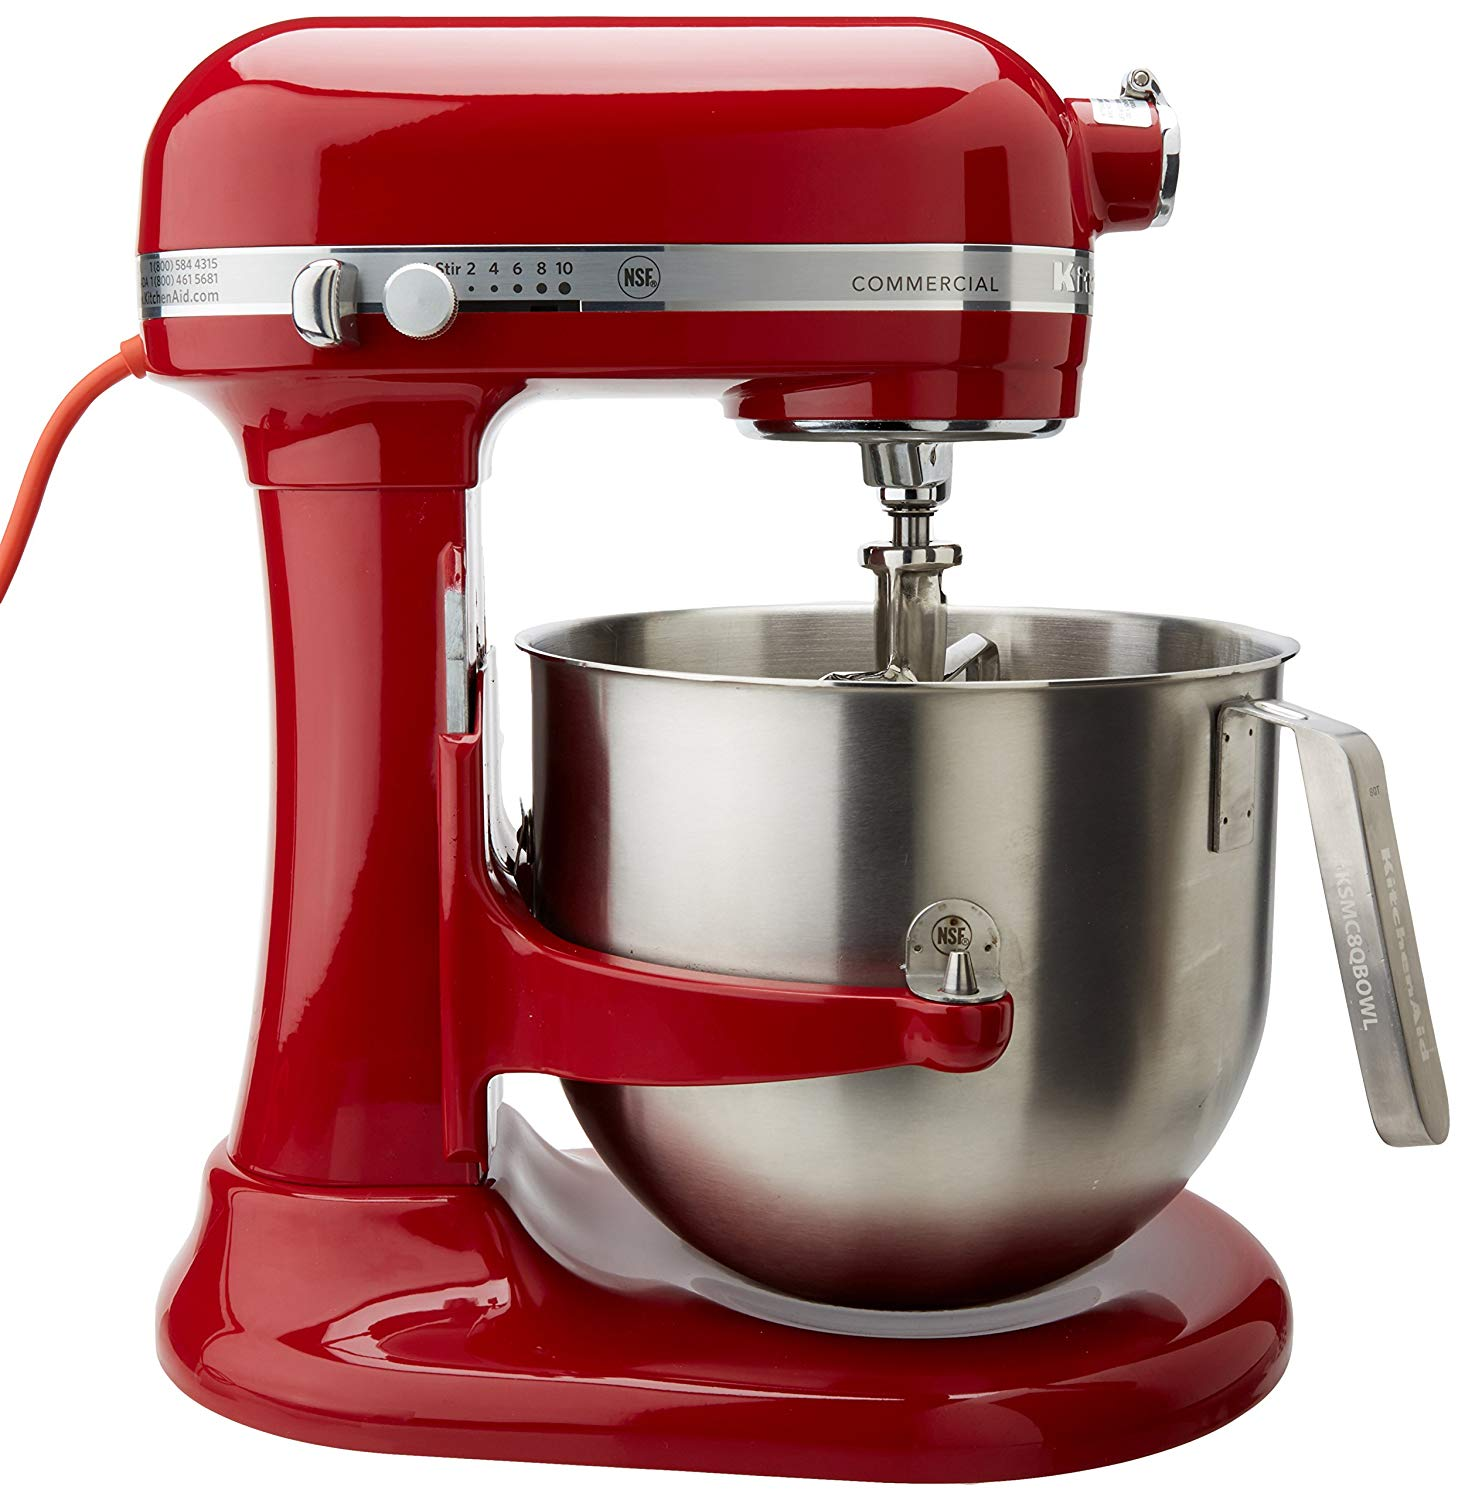 Kitchenaid commercial 8-qt bowl lift nsf stand mixer